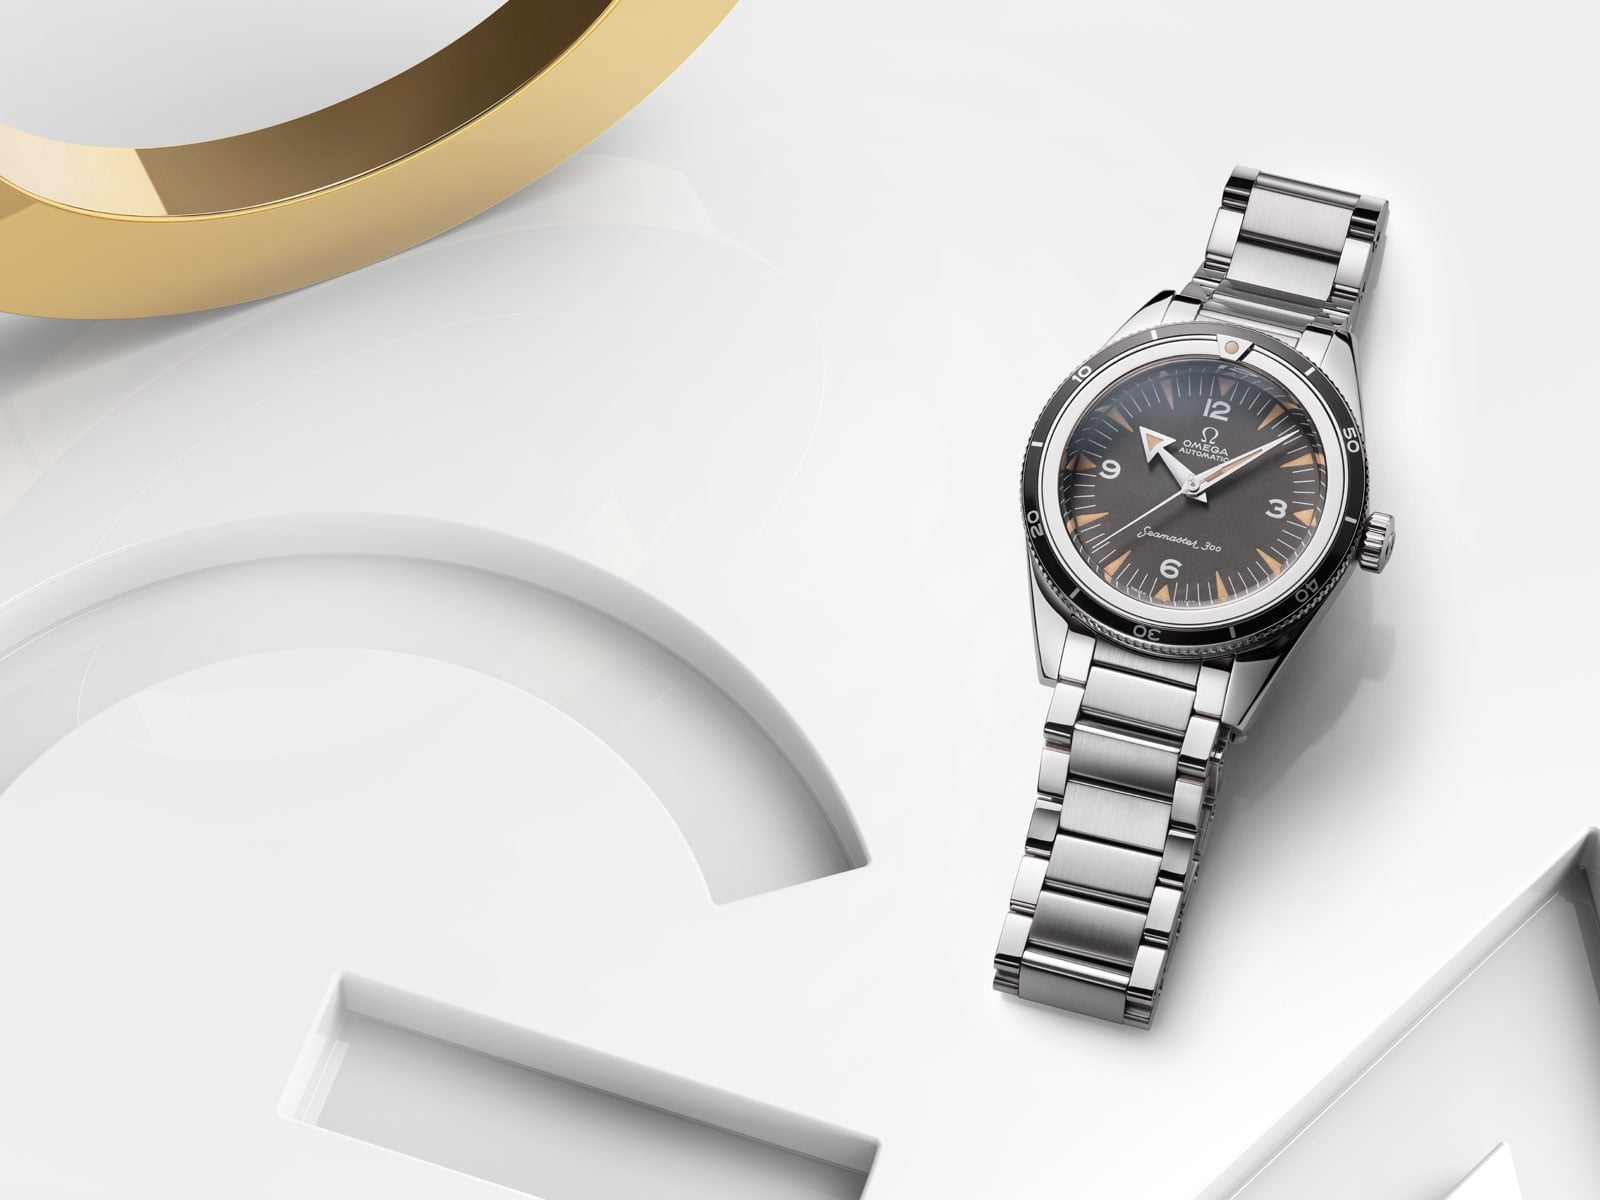 IL SEAMASTER 300 60TH ANNIVERSARY LIMITED EDITION